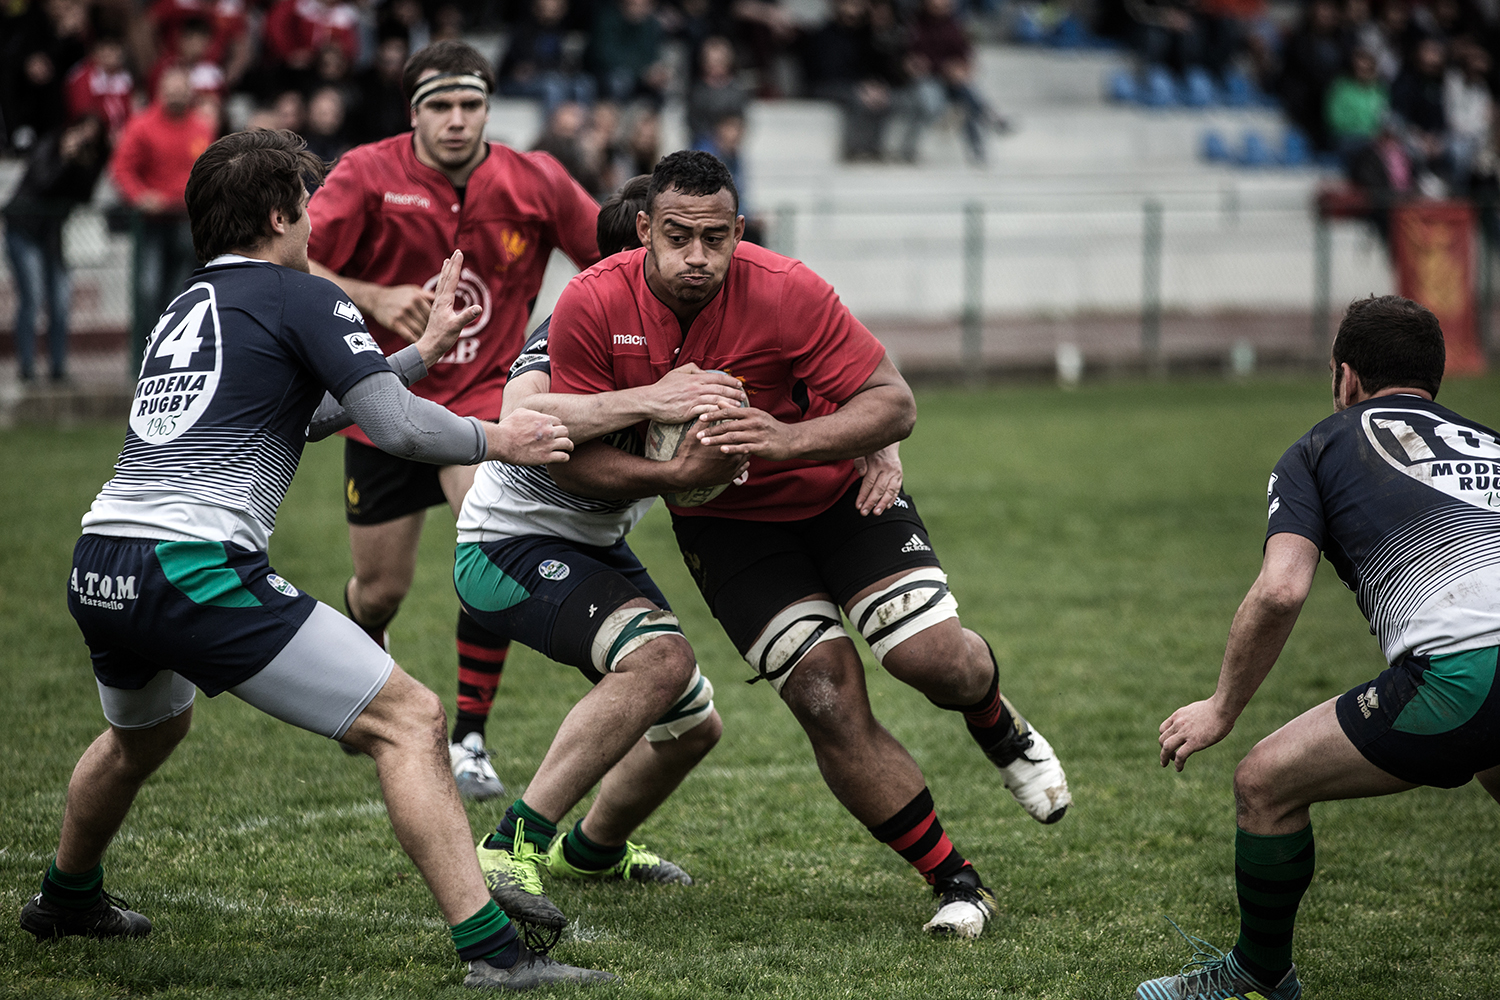 rugby_photograph_20.jpg